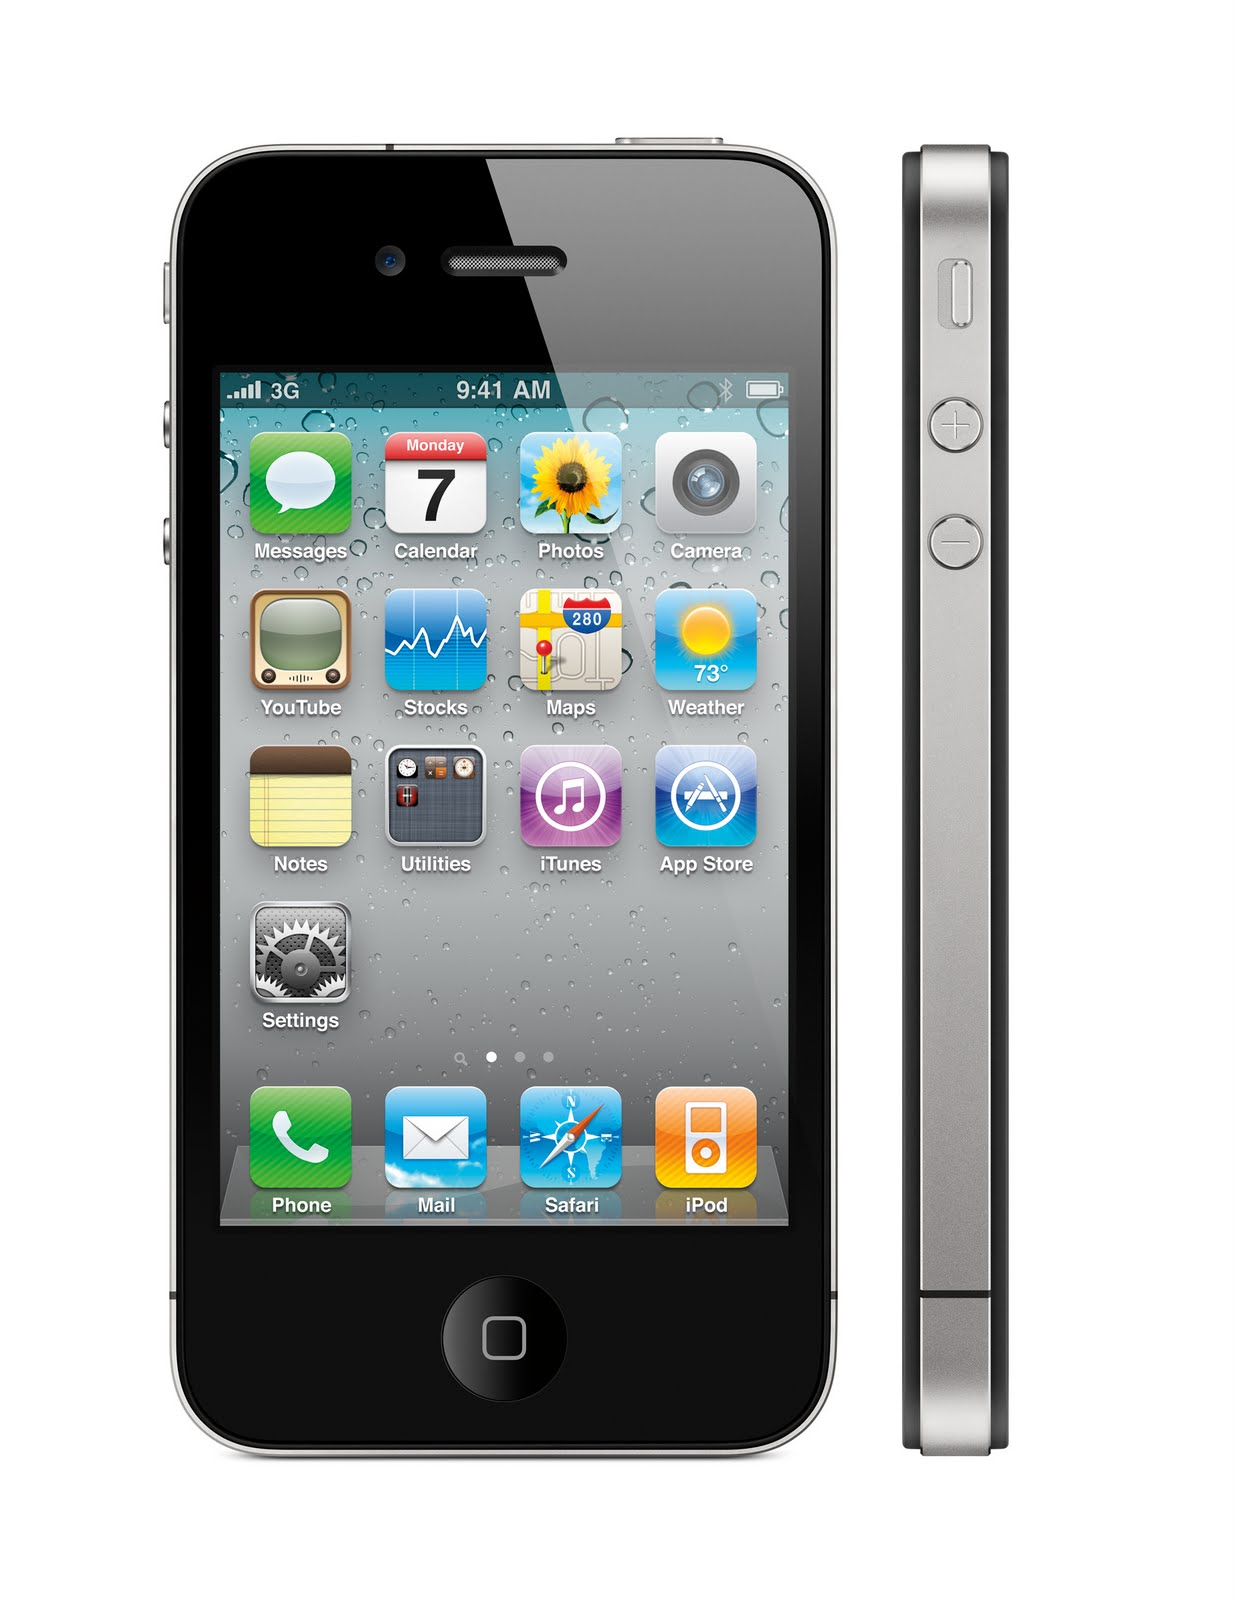 iPhone 4, iPad 4G & Me: What To Expect From iOS 4